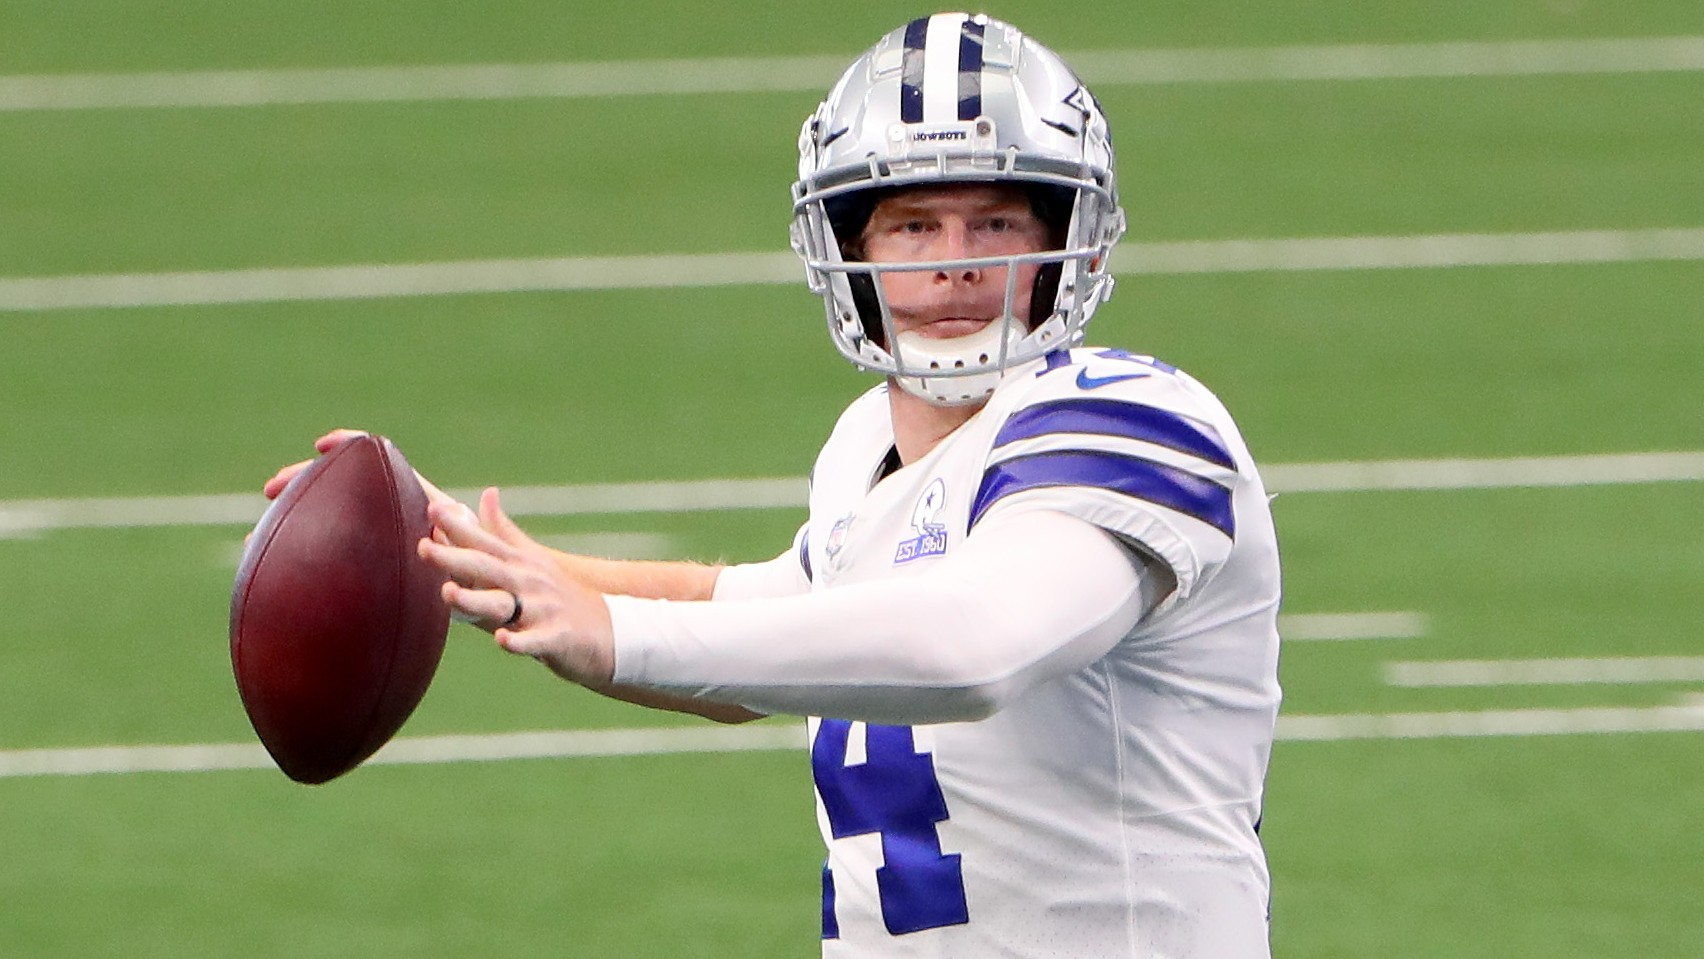 Andy Dalton's contract with Cowboys: How much can QB earn as Dallas' starter in 2020?